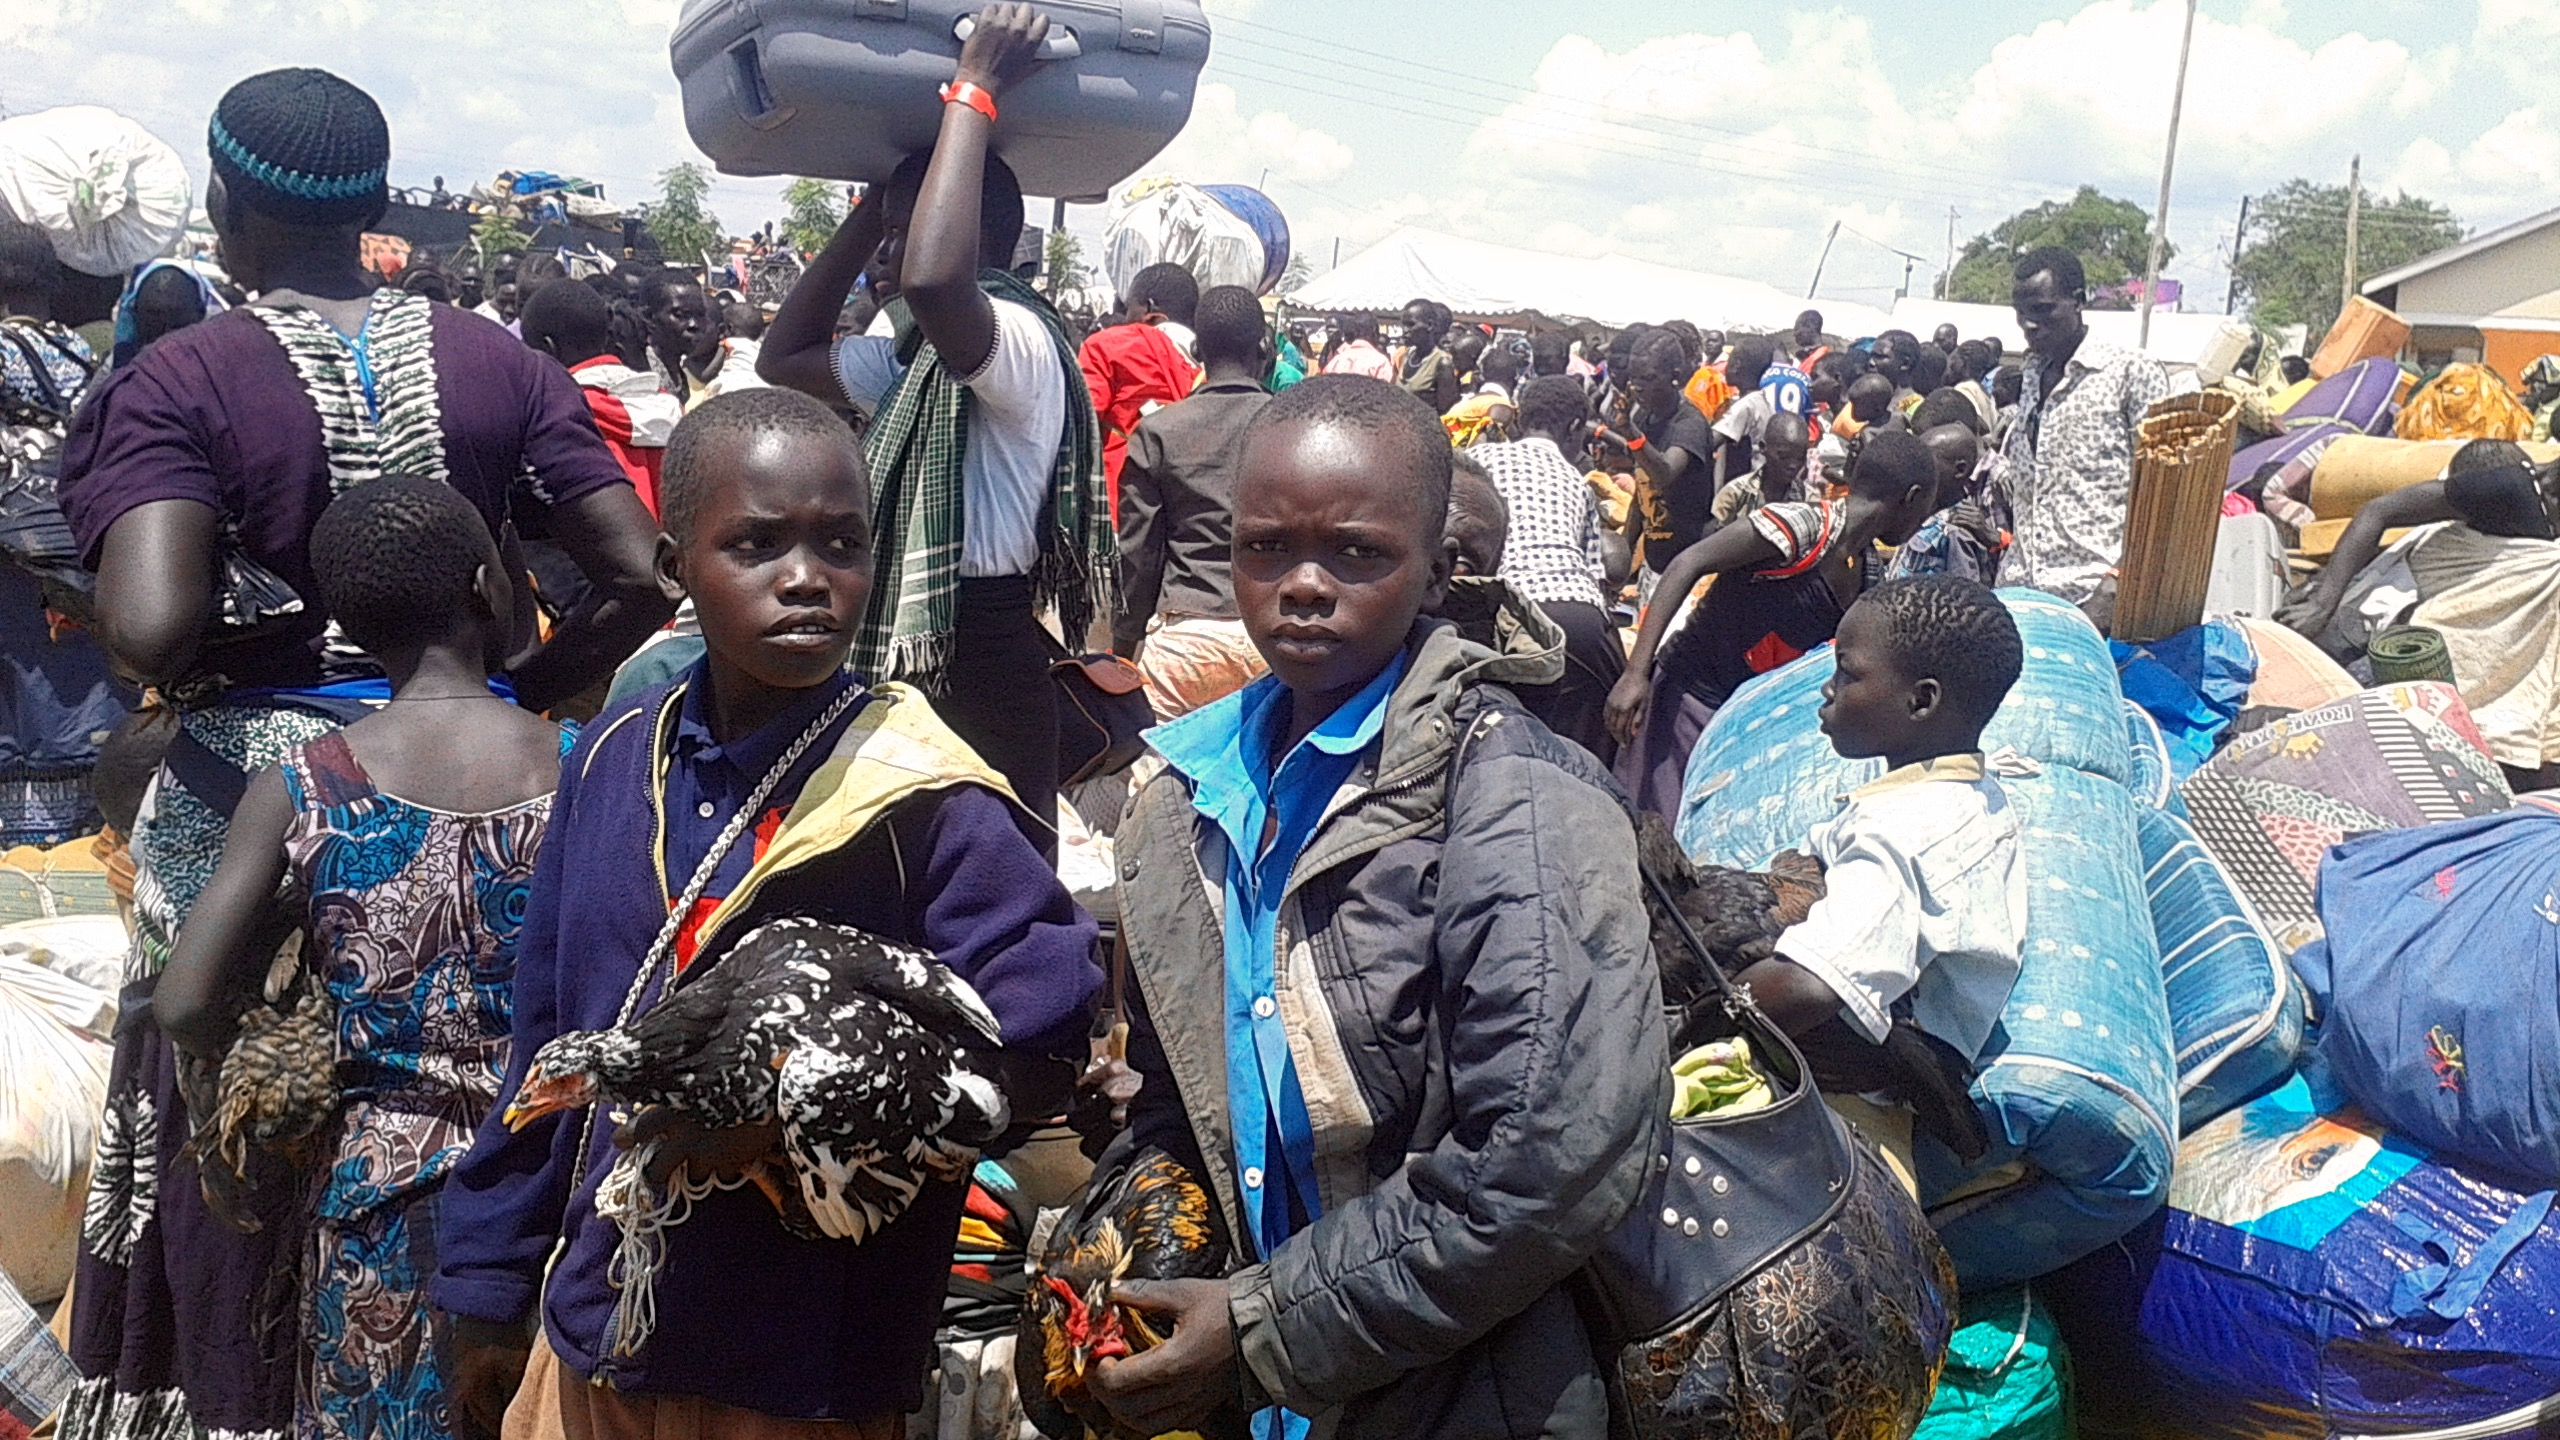 South Sudanese refugee boys holding chickens on arrival in Uganda